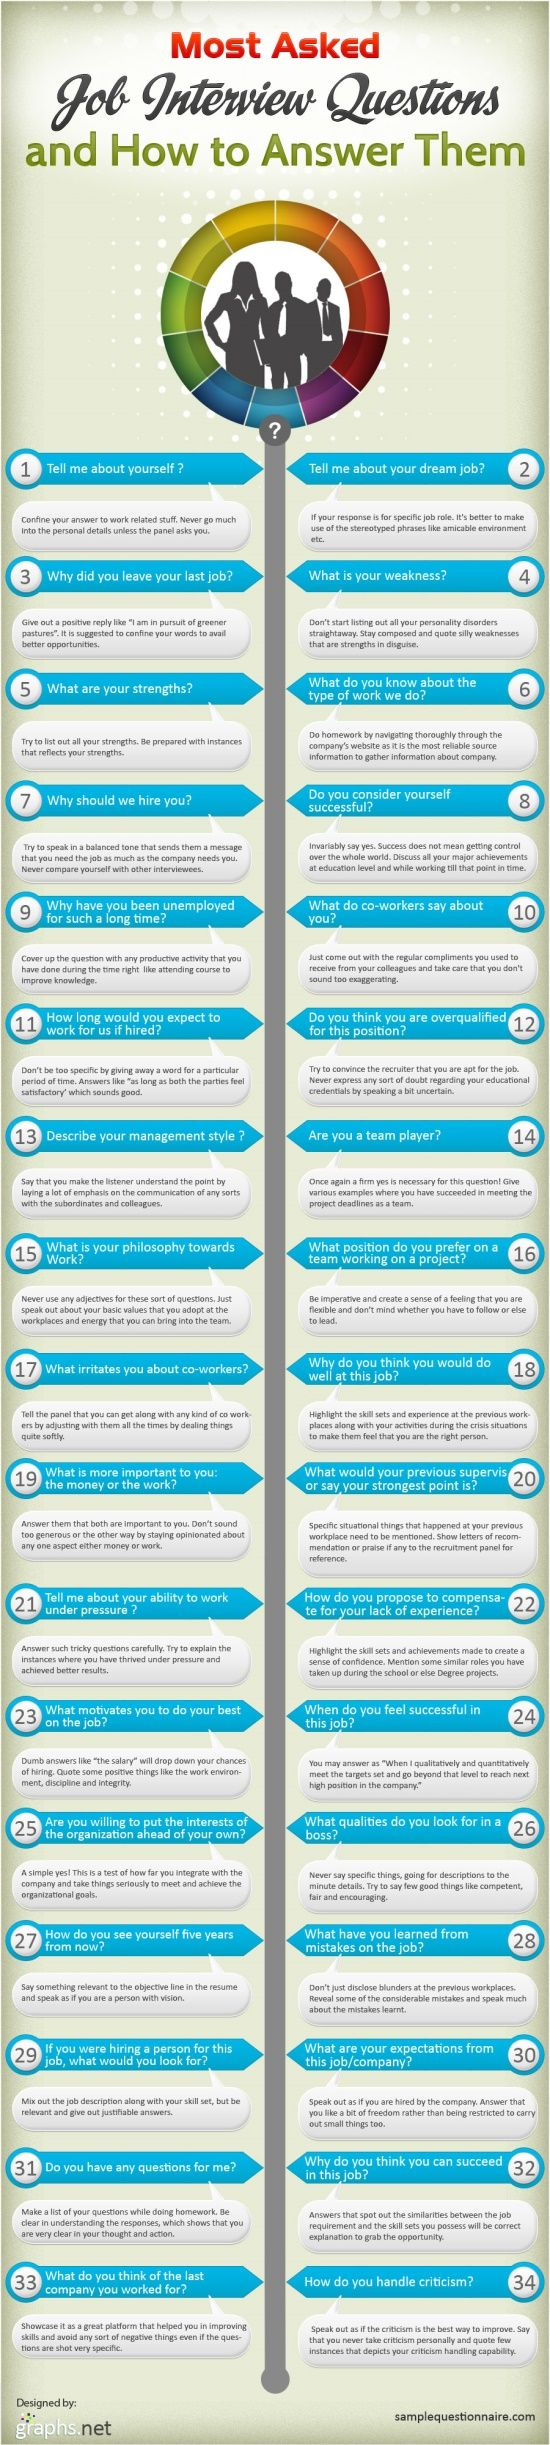 Oh man I hate some of these...Most asked interview questions and how to answer them